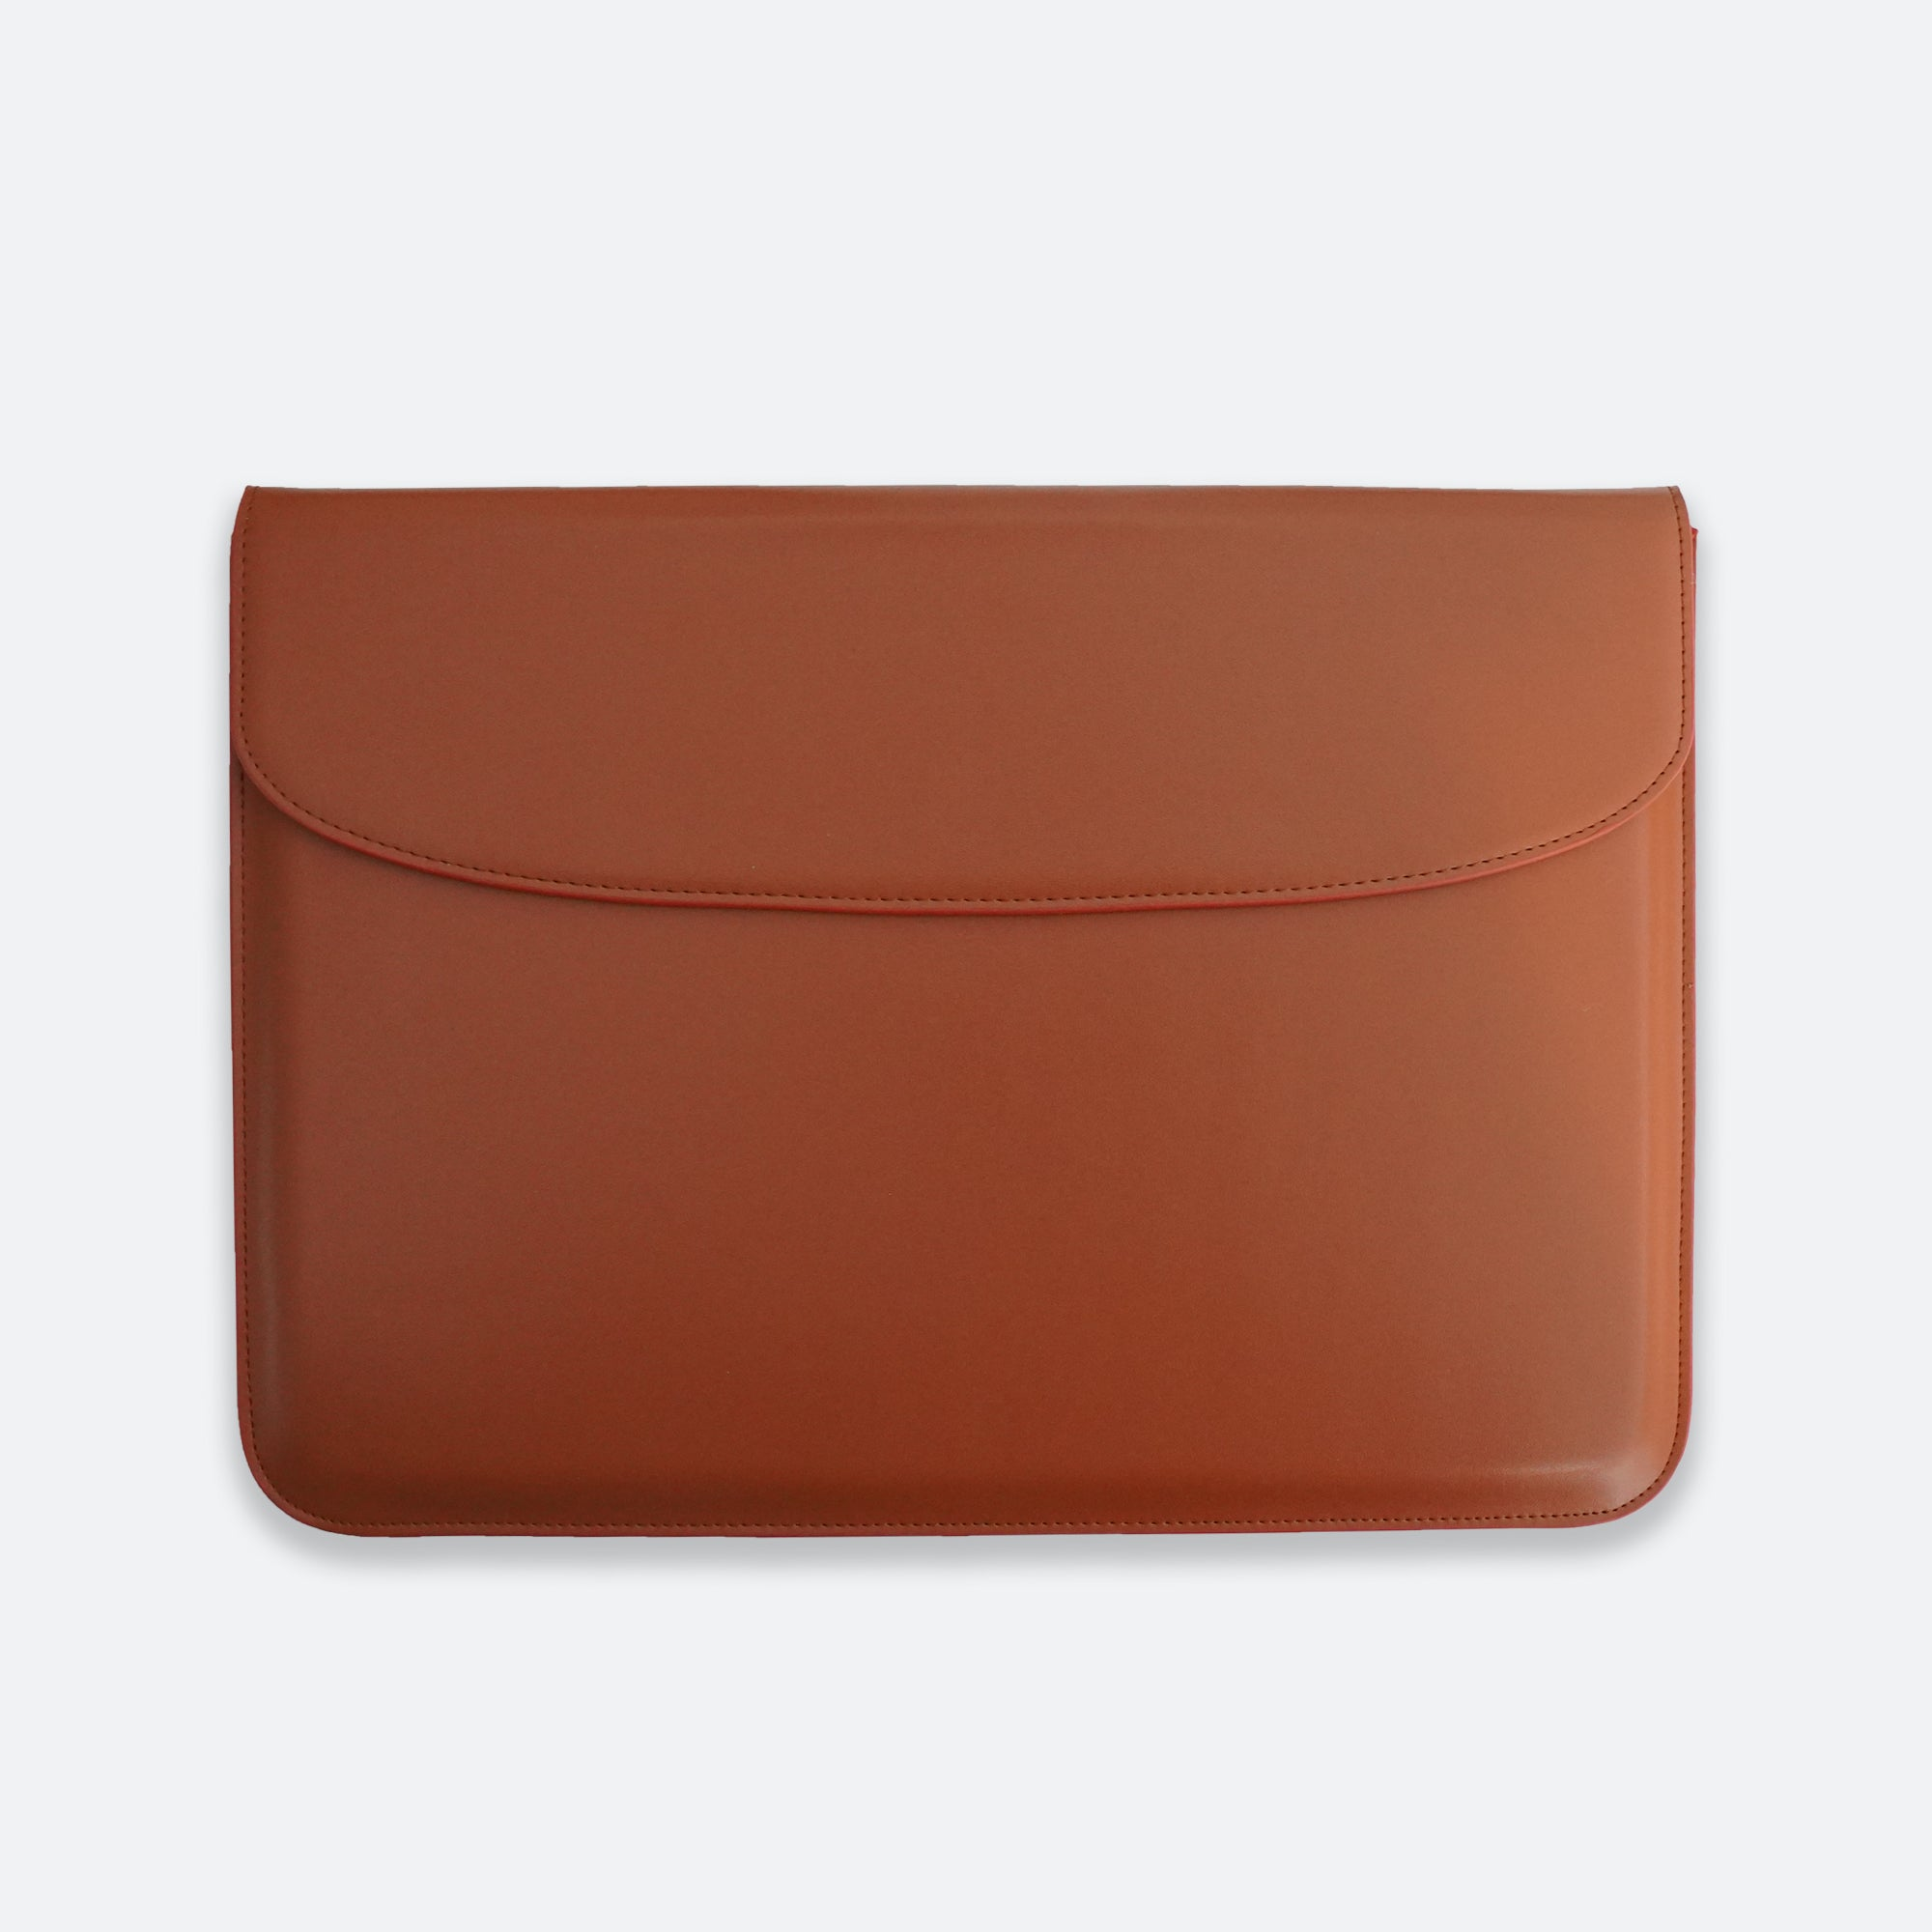 Mendes Laptop Sleeve in Brown - Kastemize